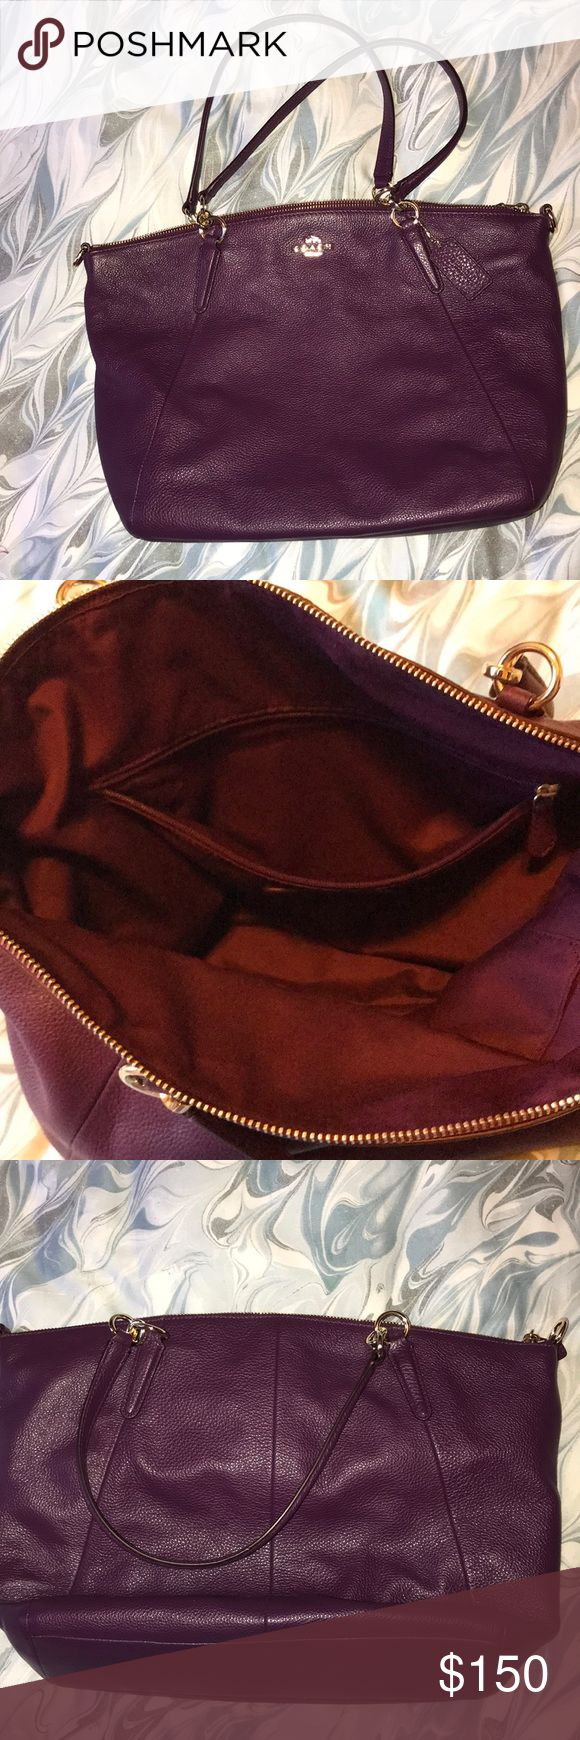 JUST ADDED-COACH KELSEY PEBBLED LEATHER SATCHEL Gorgeous Authentic Coach Kelsey Satchel in purple pebbled leather. Super soft. Clean inside and out from a smoke free closet. Comes with strap and can be used as a Crossbody. I purchased it from another posher. Coach Bags Satchels